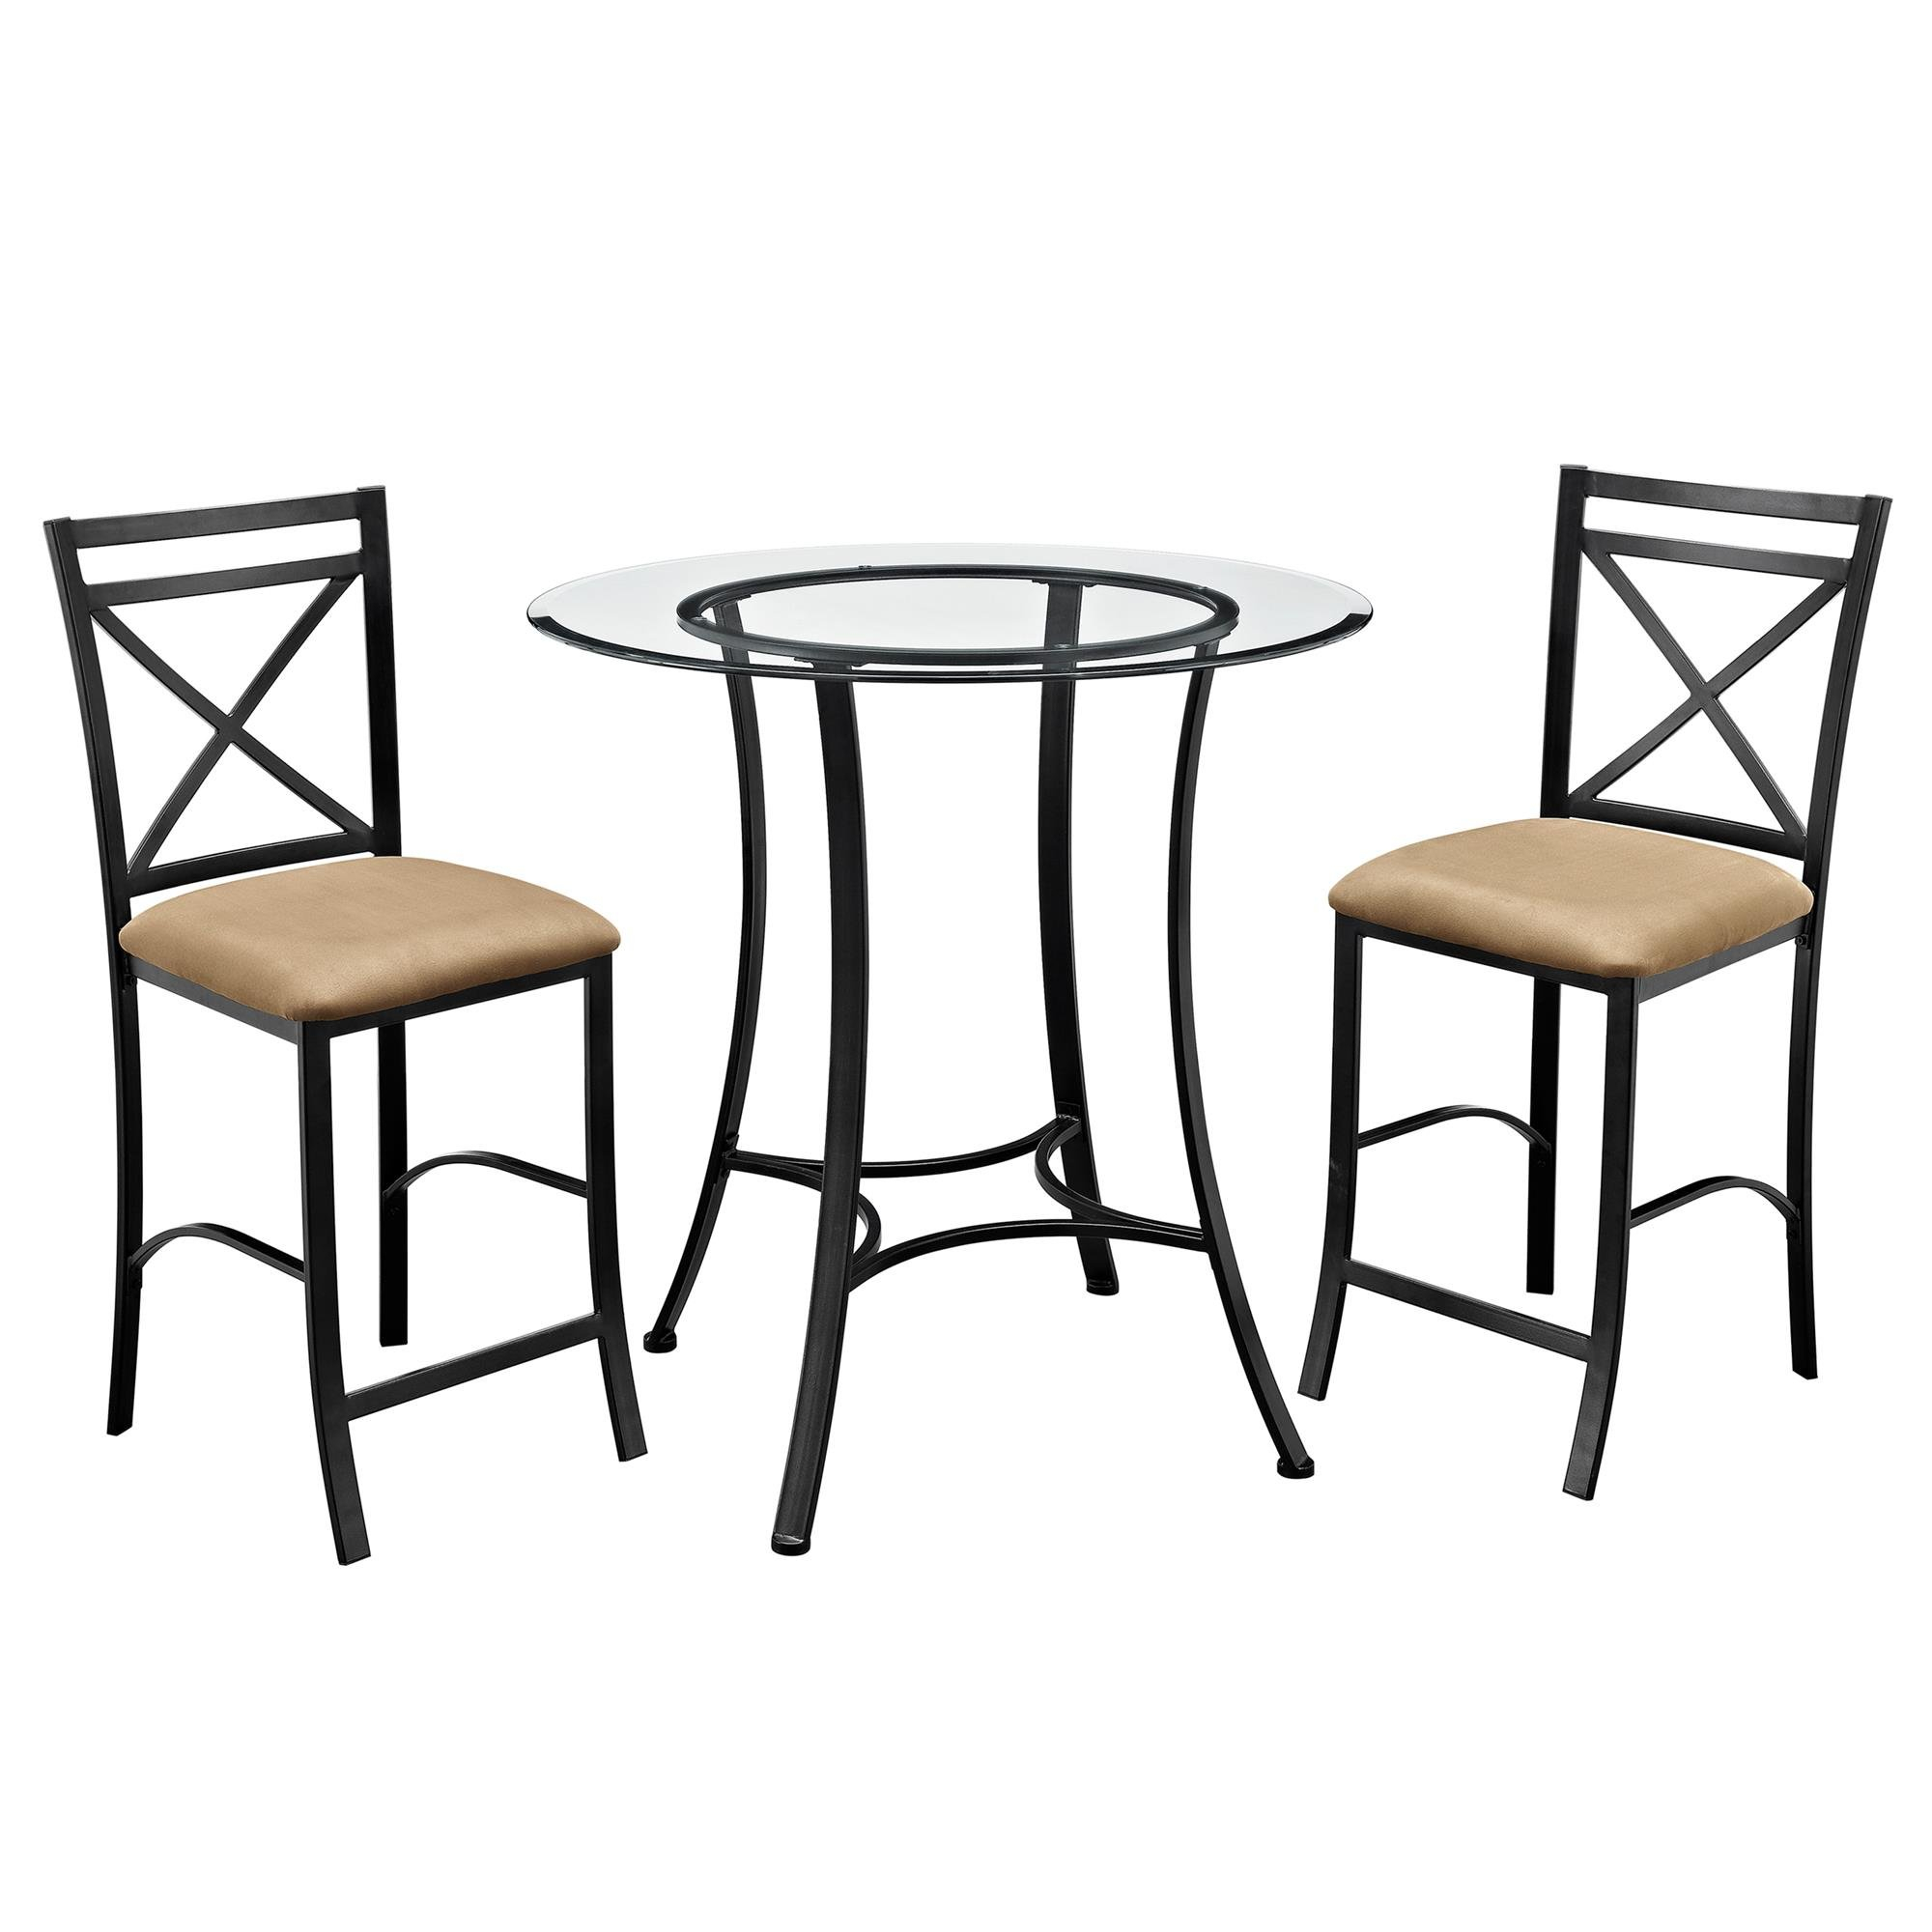 Nutter 3 Piece Dining Sets Pertaining To 2020 Saleh 3 Piece Dining Set & Reviews (#10 of 20)